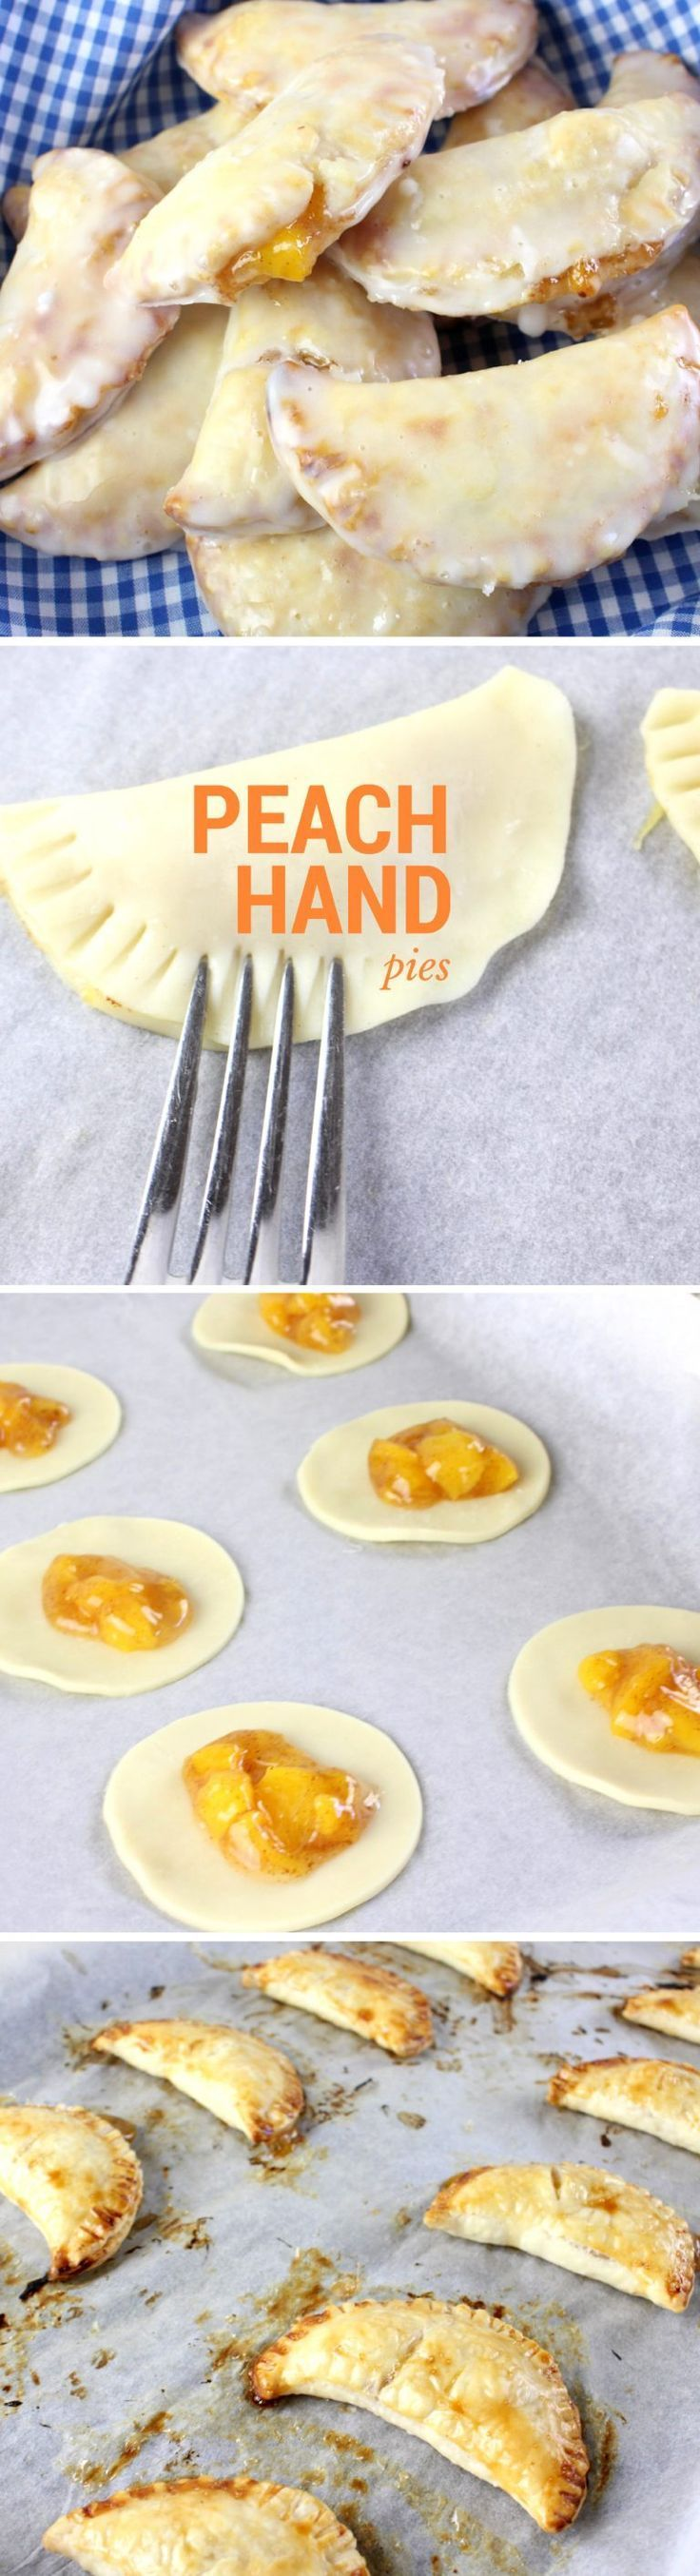 DIY Peach Fruit Hand Pie Recipe! Perfect summer fruits in a deliciously sweet iced hand pie. Easy to make and oh so yummy! Perfect for your next BBQ or family party.